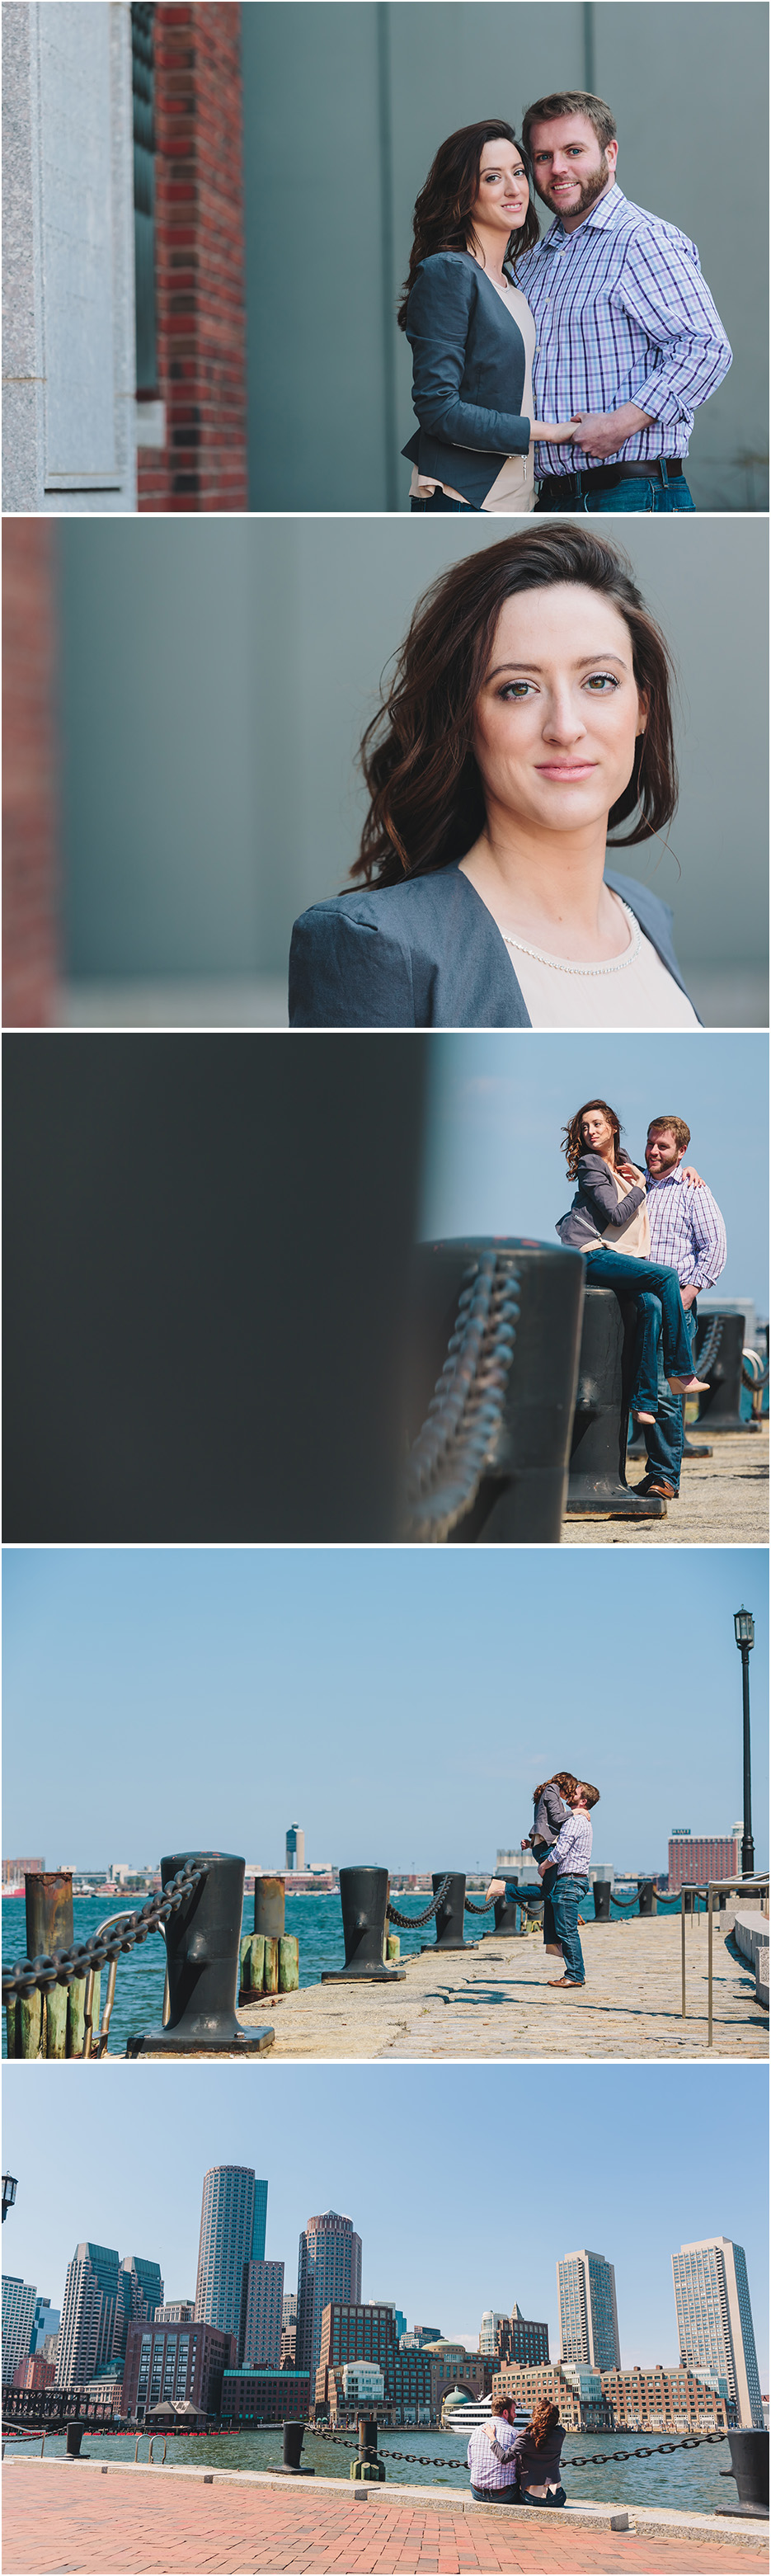 BOSTON WATERFRONT ENGAGEMENT PHOTOS